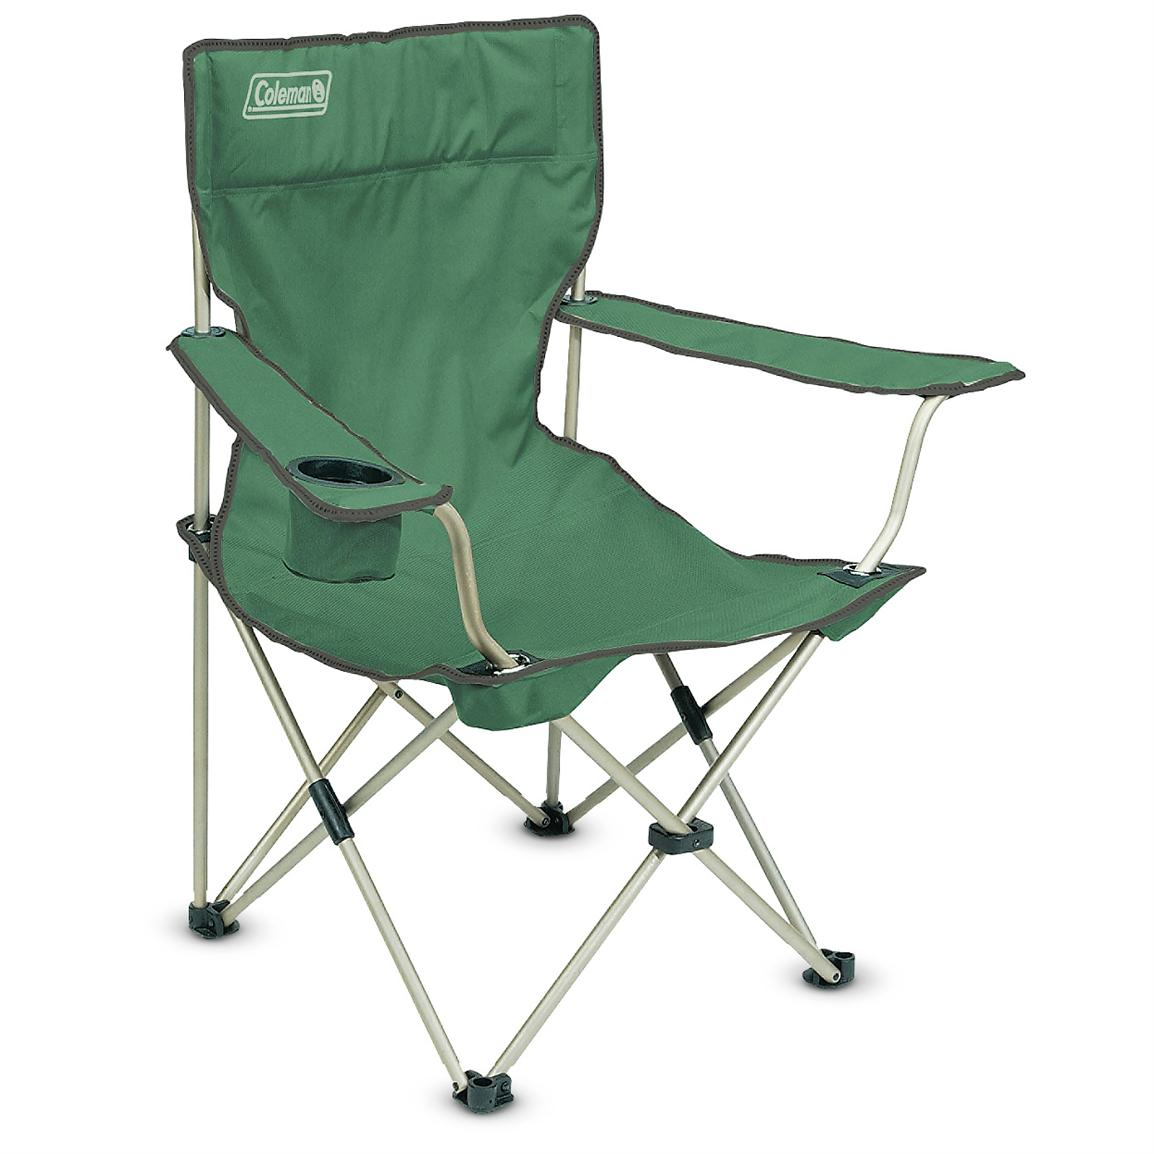 Camping Chair With Footrest Coleman Arm Chair 140305 Chairs At Sportsman 39s Guide